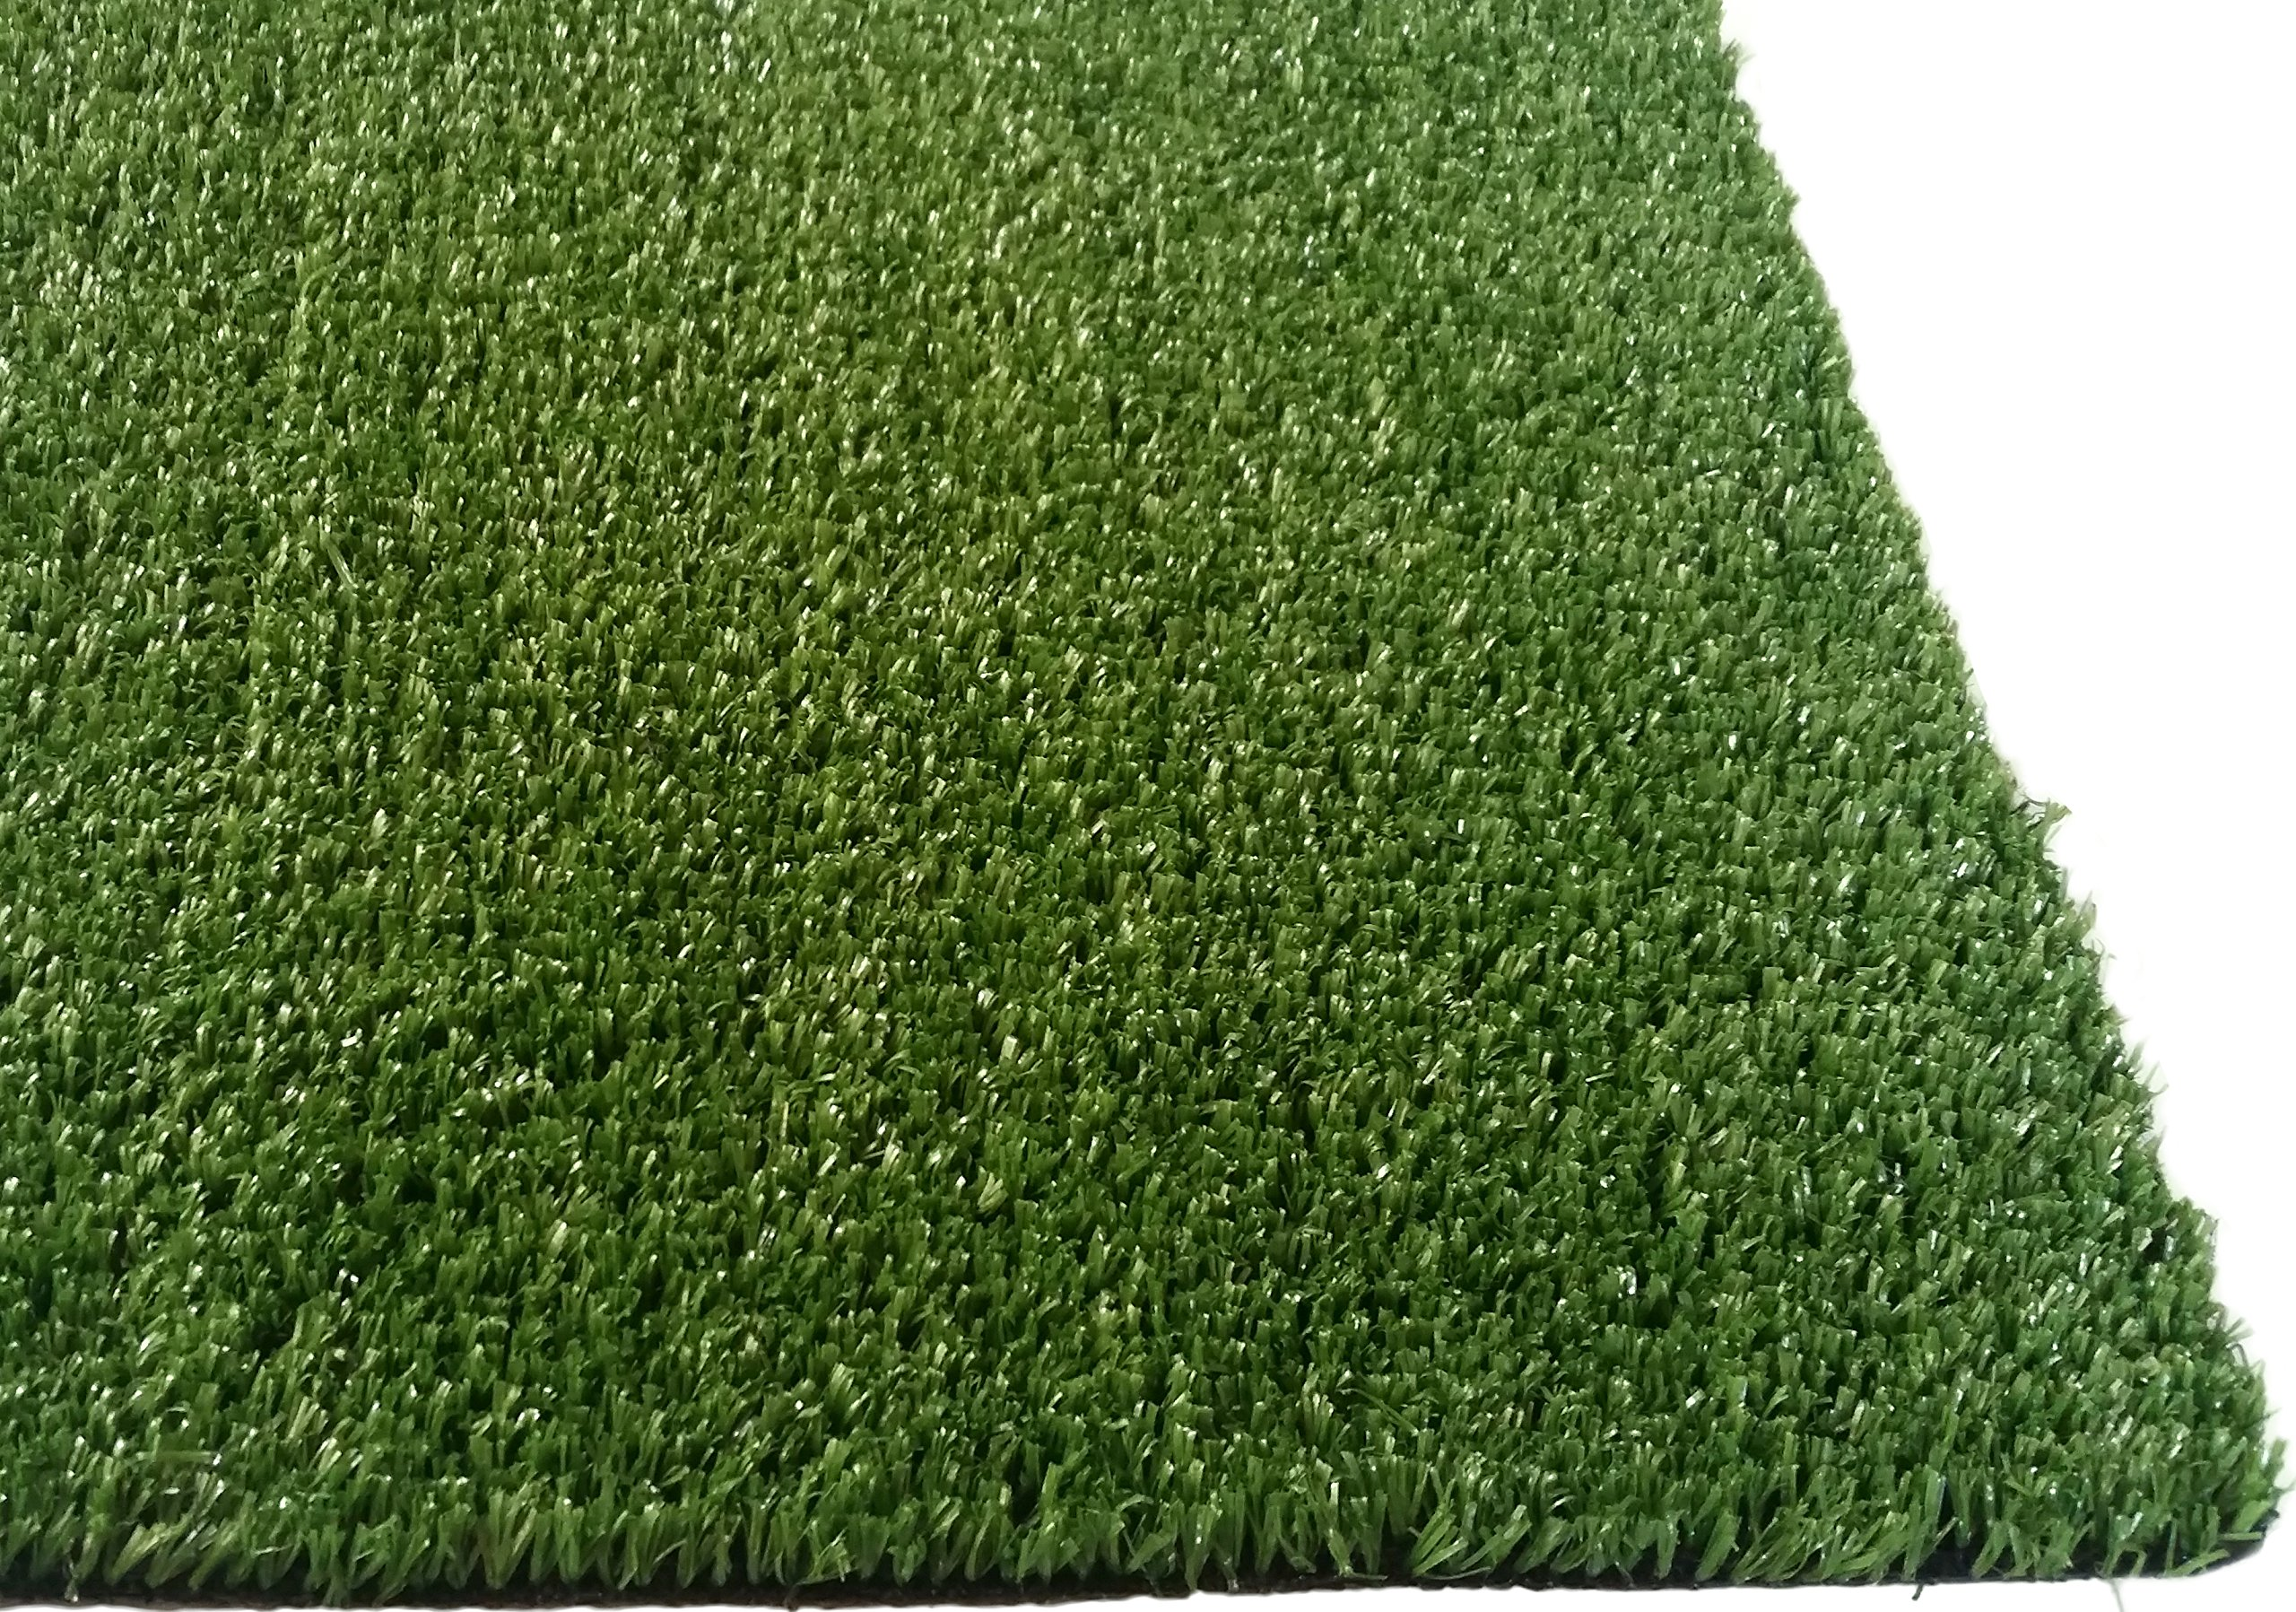 PZG Artificial Grass Rug w/ Drainage Holes & Rubber Backing | 2-Tone Realistic Synthetic Grass Mat | Extra-Heavy & Soft Pet Turf | Lead-Free Fake Grass for Dogs or Outdoor Decor | Size: 24' x 12'